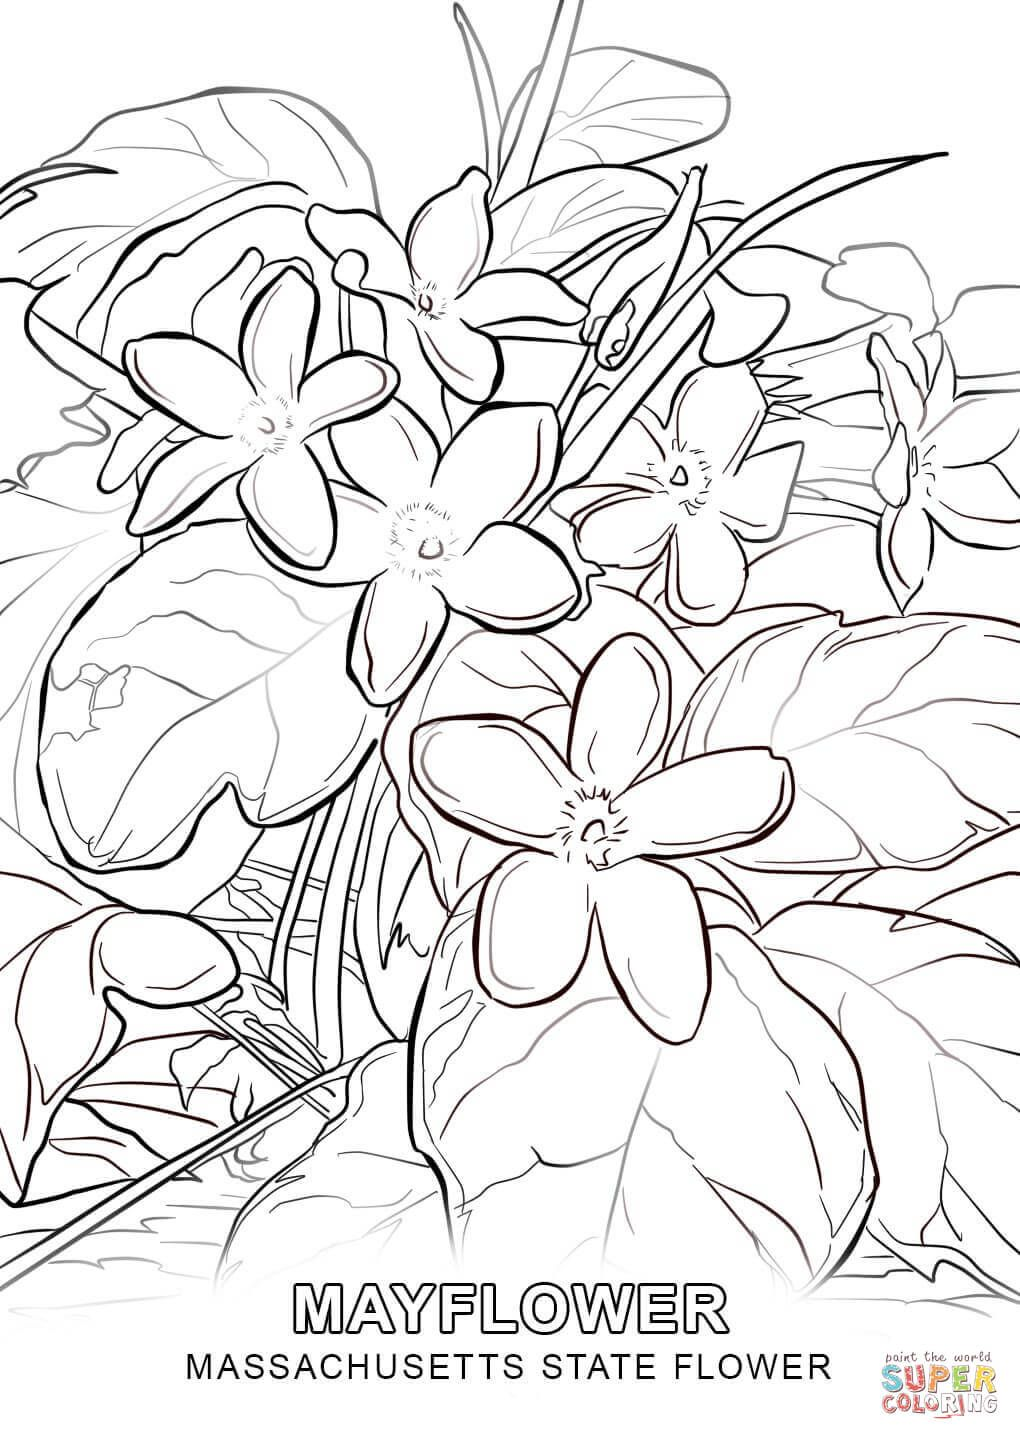 Massachusetts State Flower coloring page | Free Printable Coloring ...